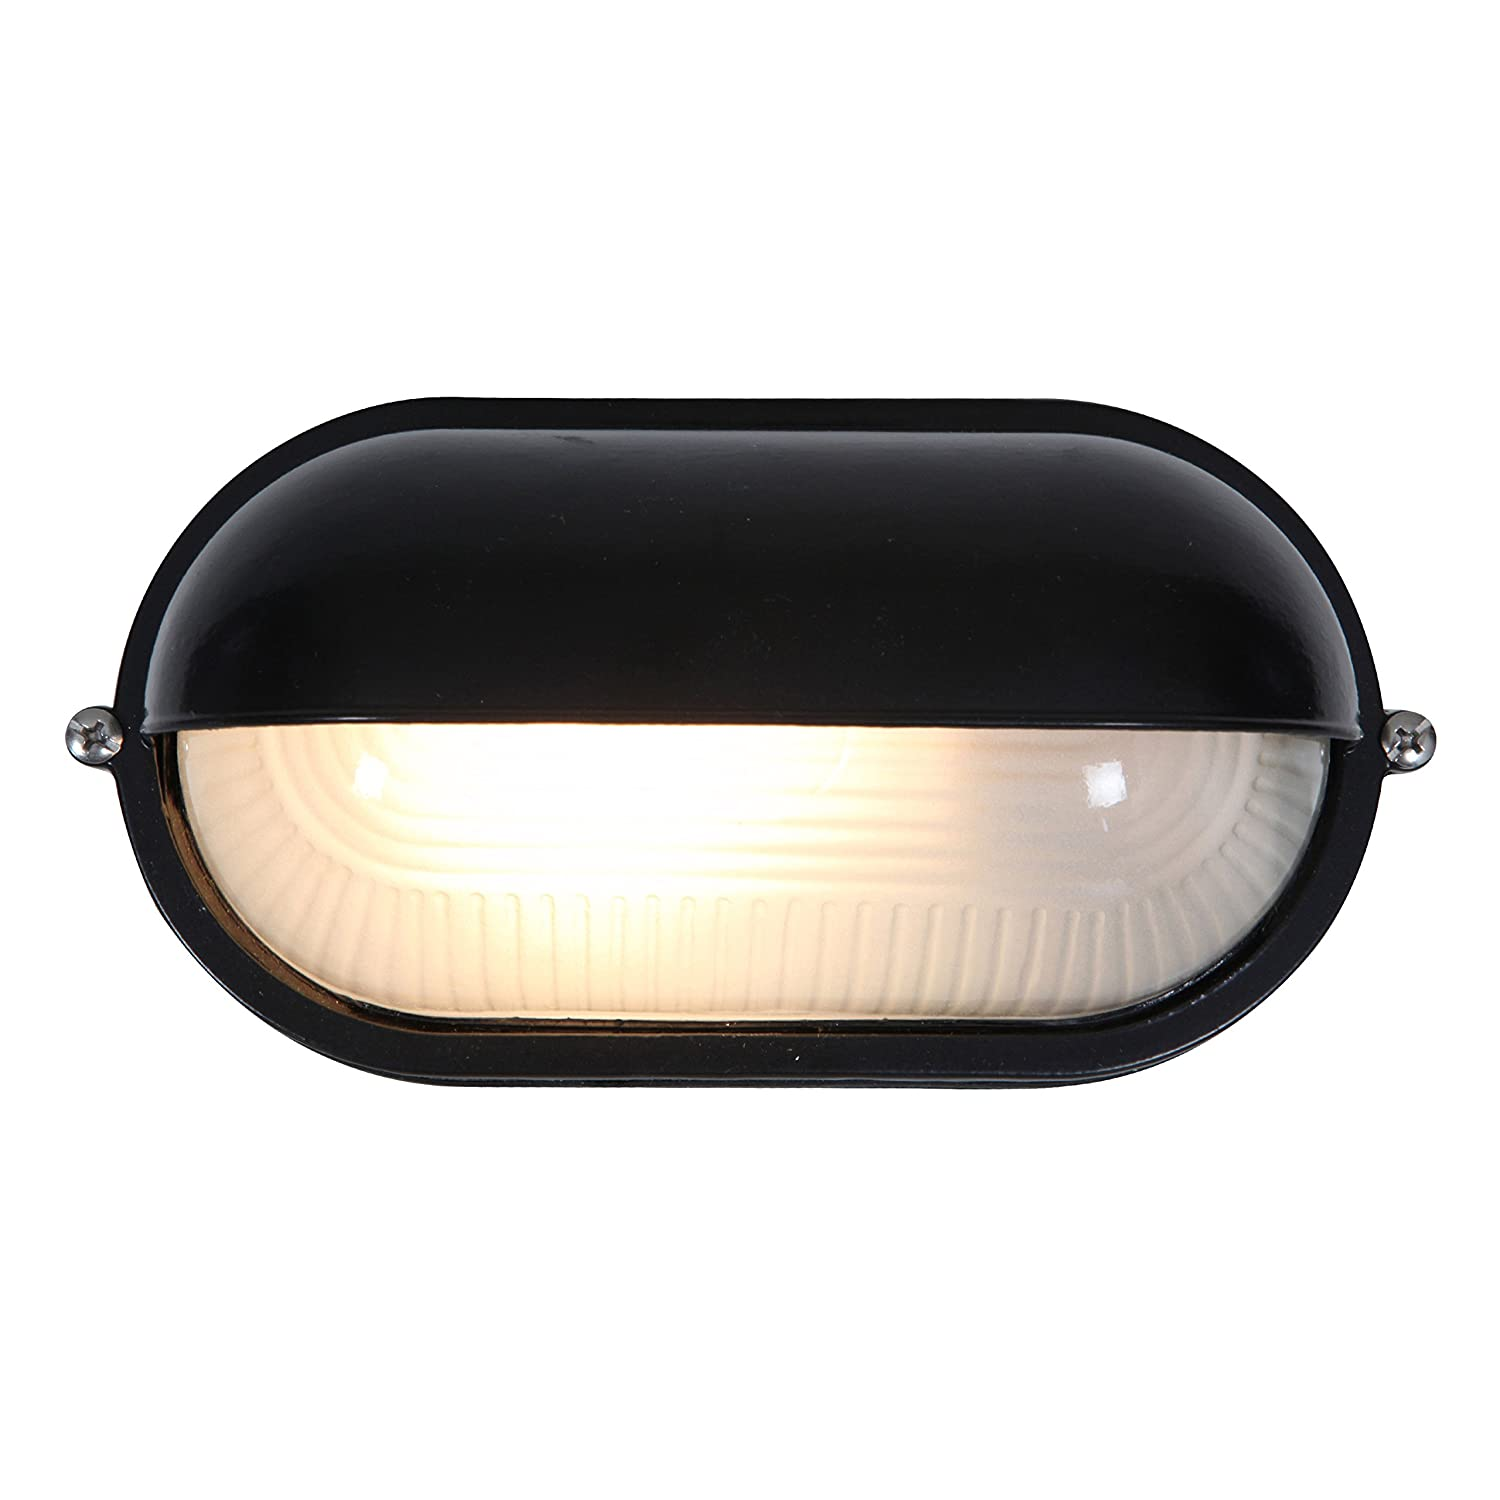 Nauticus outdoor bulkhead black finish with frosted glass shade nauticus outdoor bulkhead black finish with frosted glass shade wall porch lights amazon aloadofball Image collections